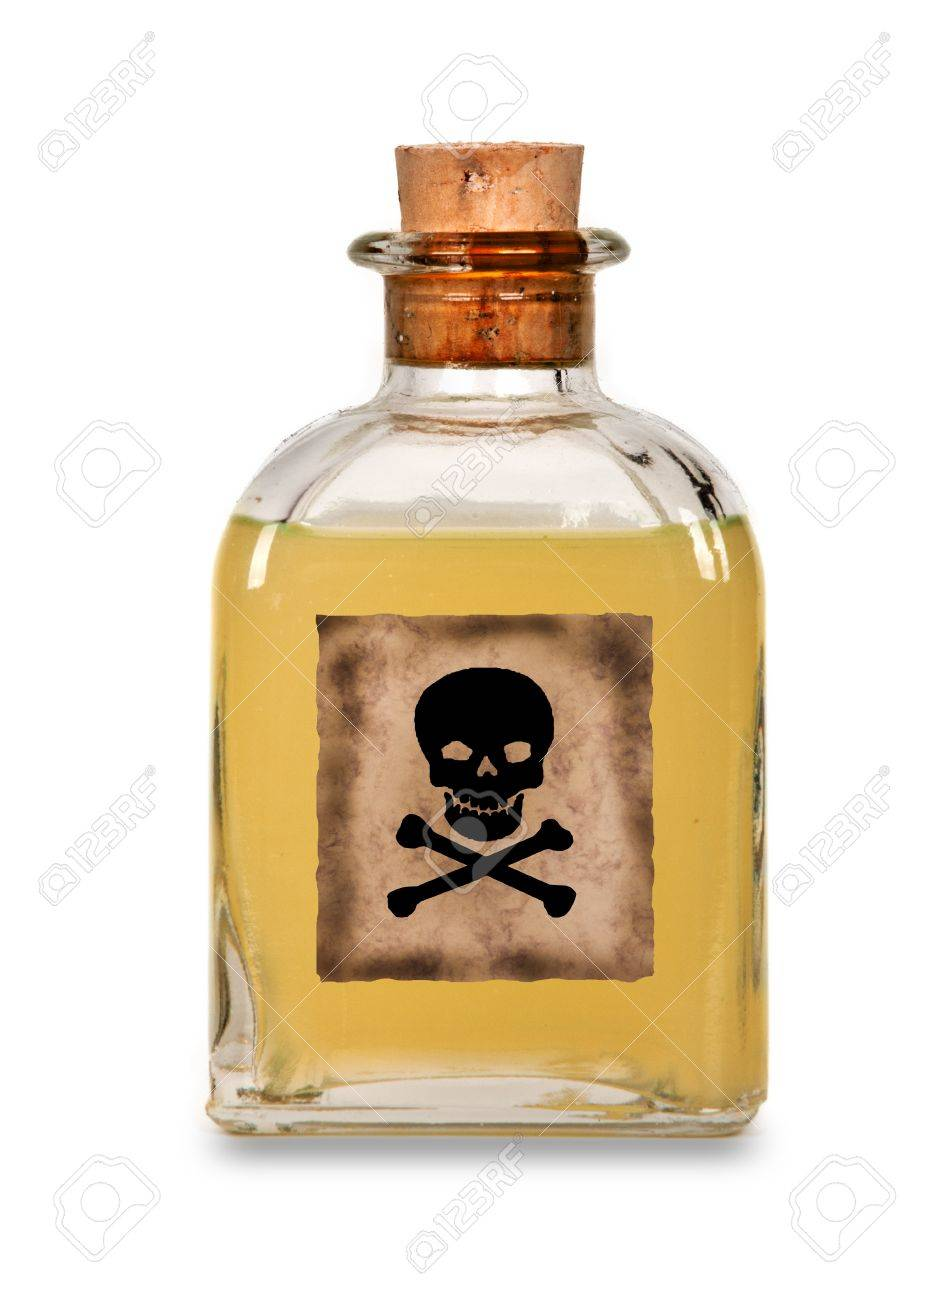 Glass bottle of poison on a white background Stock Photo - 15983049